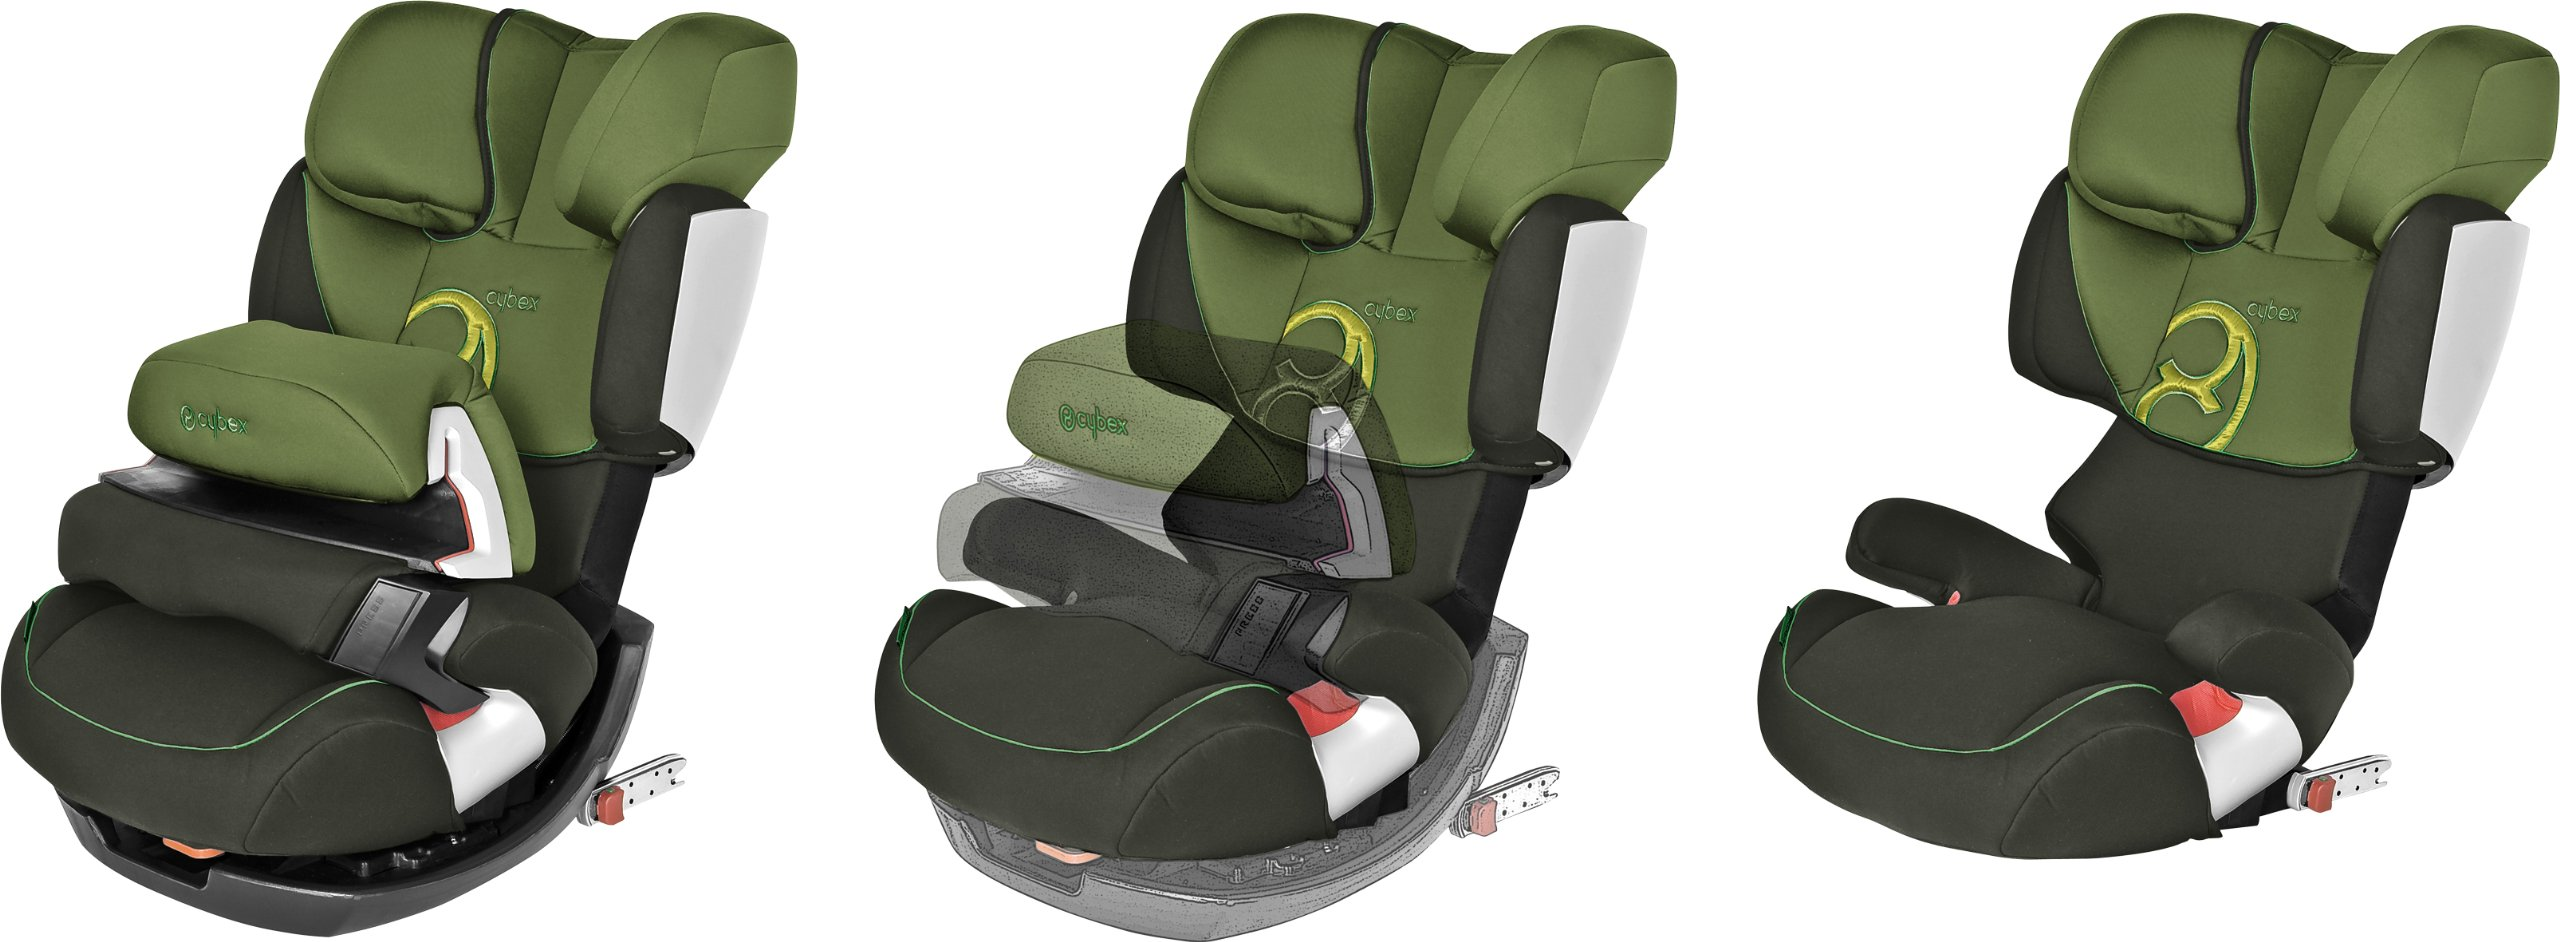 CYBEX Silver Pallas-Fix 2-in-1 Child's Car Seat, For Cars with and without ISOFIX, Group 1/2/3 (9-36 kg), From approx. 9 Months to approx. 12 Years, Rumba Red Cybex Sturdy and high-quality child car seat for long-term use - For children aged approx. 9 months to approx. 12 years (9-36 kg), Suitable for cars with and without ISOFIX Maximum safety - Depth-adjustable impact shield, 3-way adjustable reclining headrest, Built-in side impact protection (L.S.P. System) 11-way height-adjustable comfort headrest, One-hand adjustable reclining position, Easy conversion to Solution X-Fix for children from 3 years (group 2/3) by removing impact shield and base, Adjustable backrest 9